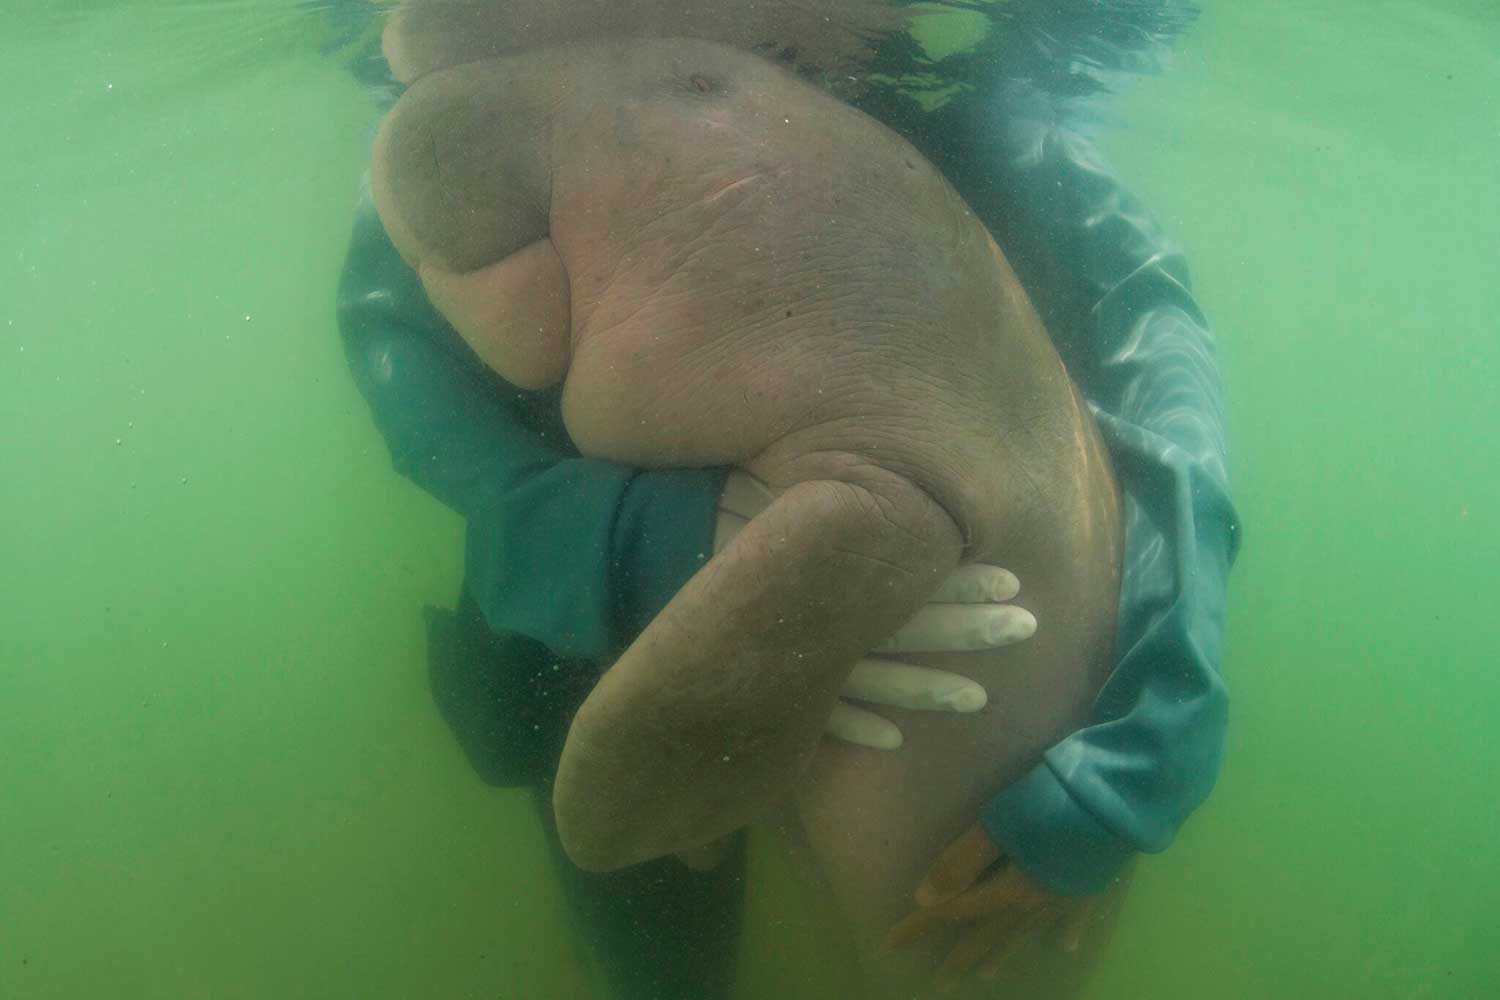 An official of the Department of Marine and Coastal Resources hugs Marium off Koh Libong on May 23, 2019. AP refiled the picture after the young dugong died on Aug 17 and it was shared by actor Leonardo DiCaprio on his Instagram on Sunday. (AP photo)